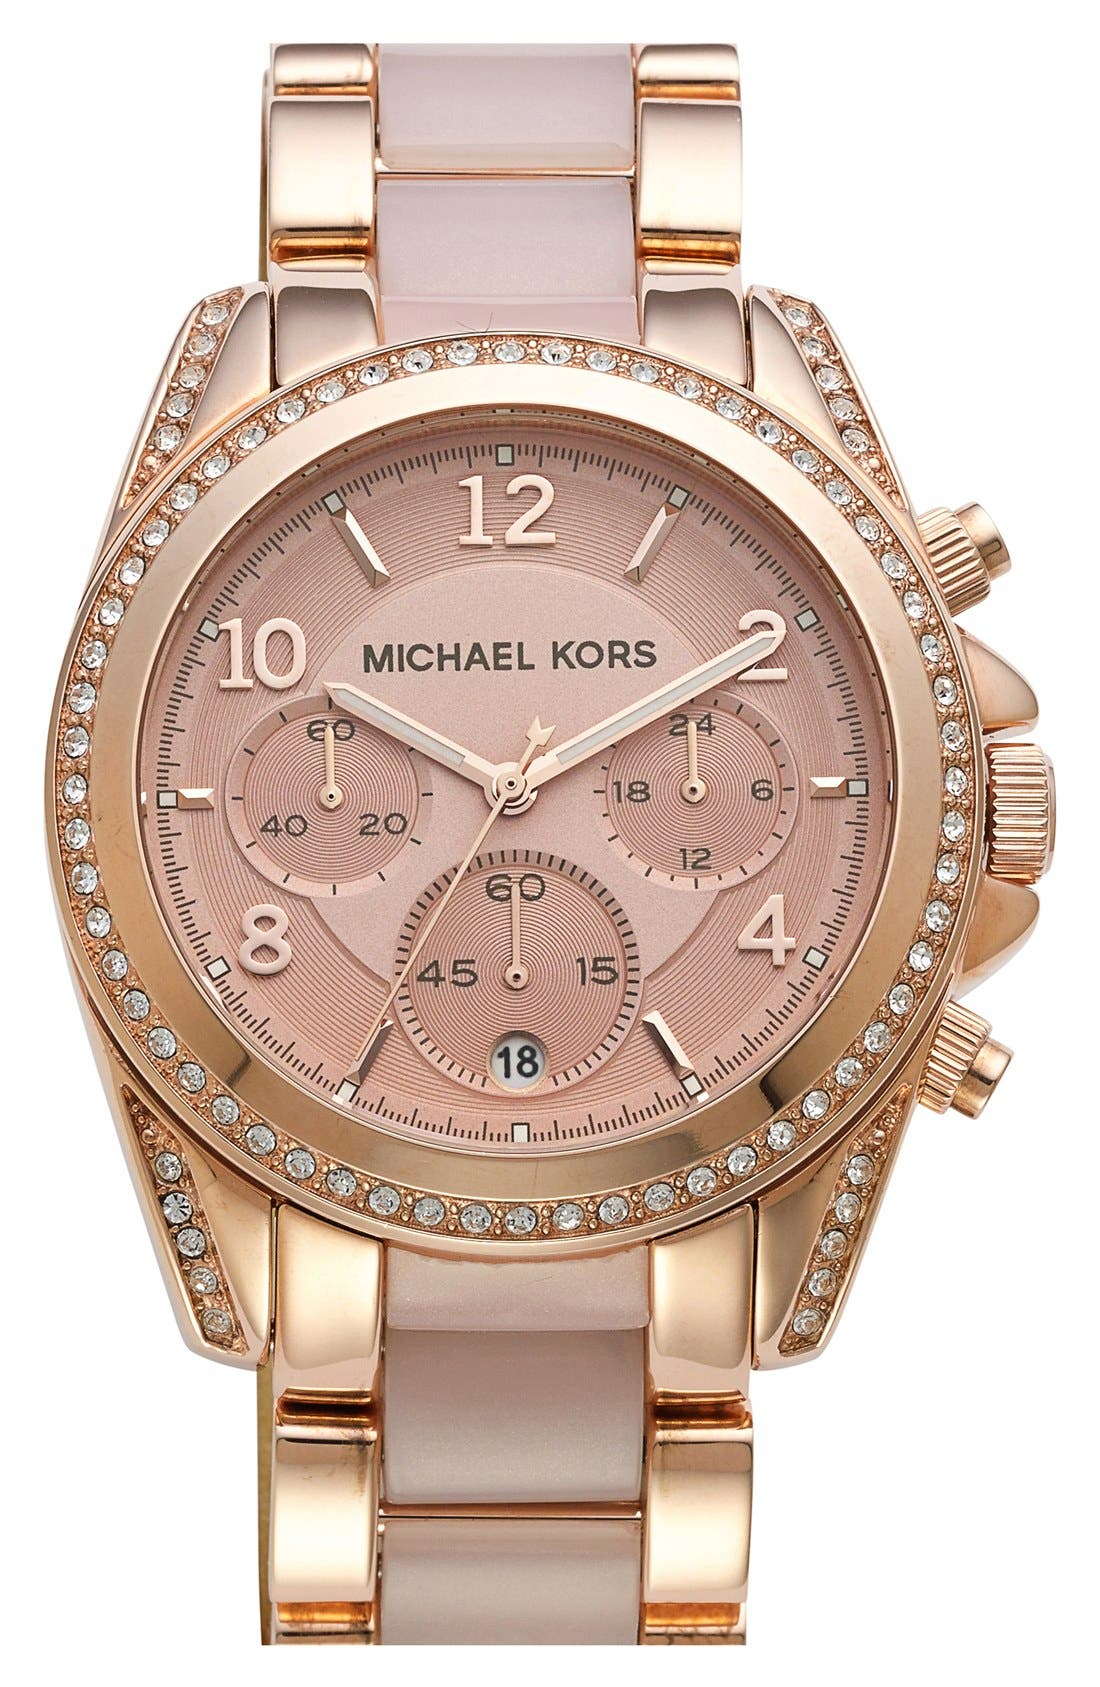 Main Image - Michael Kors 'Blair' Crystal Bezel Two-Tone Bracelet Watch, 39mm